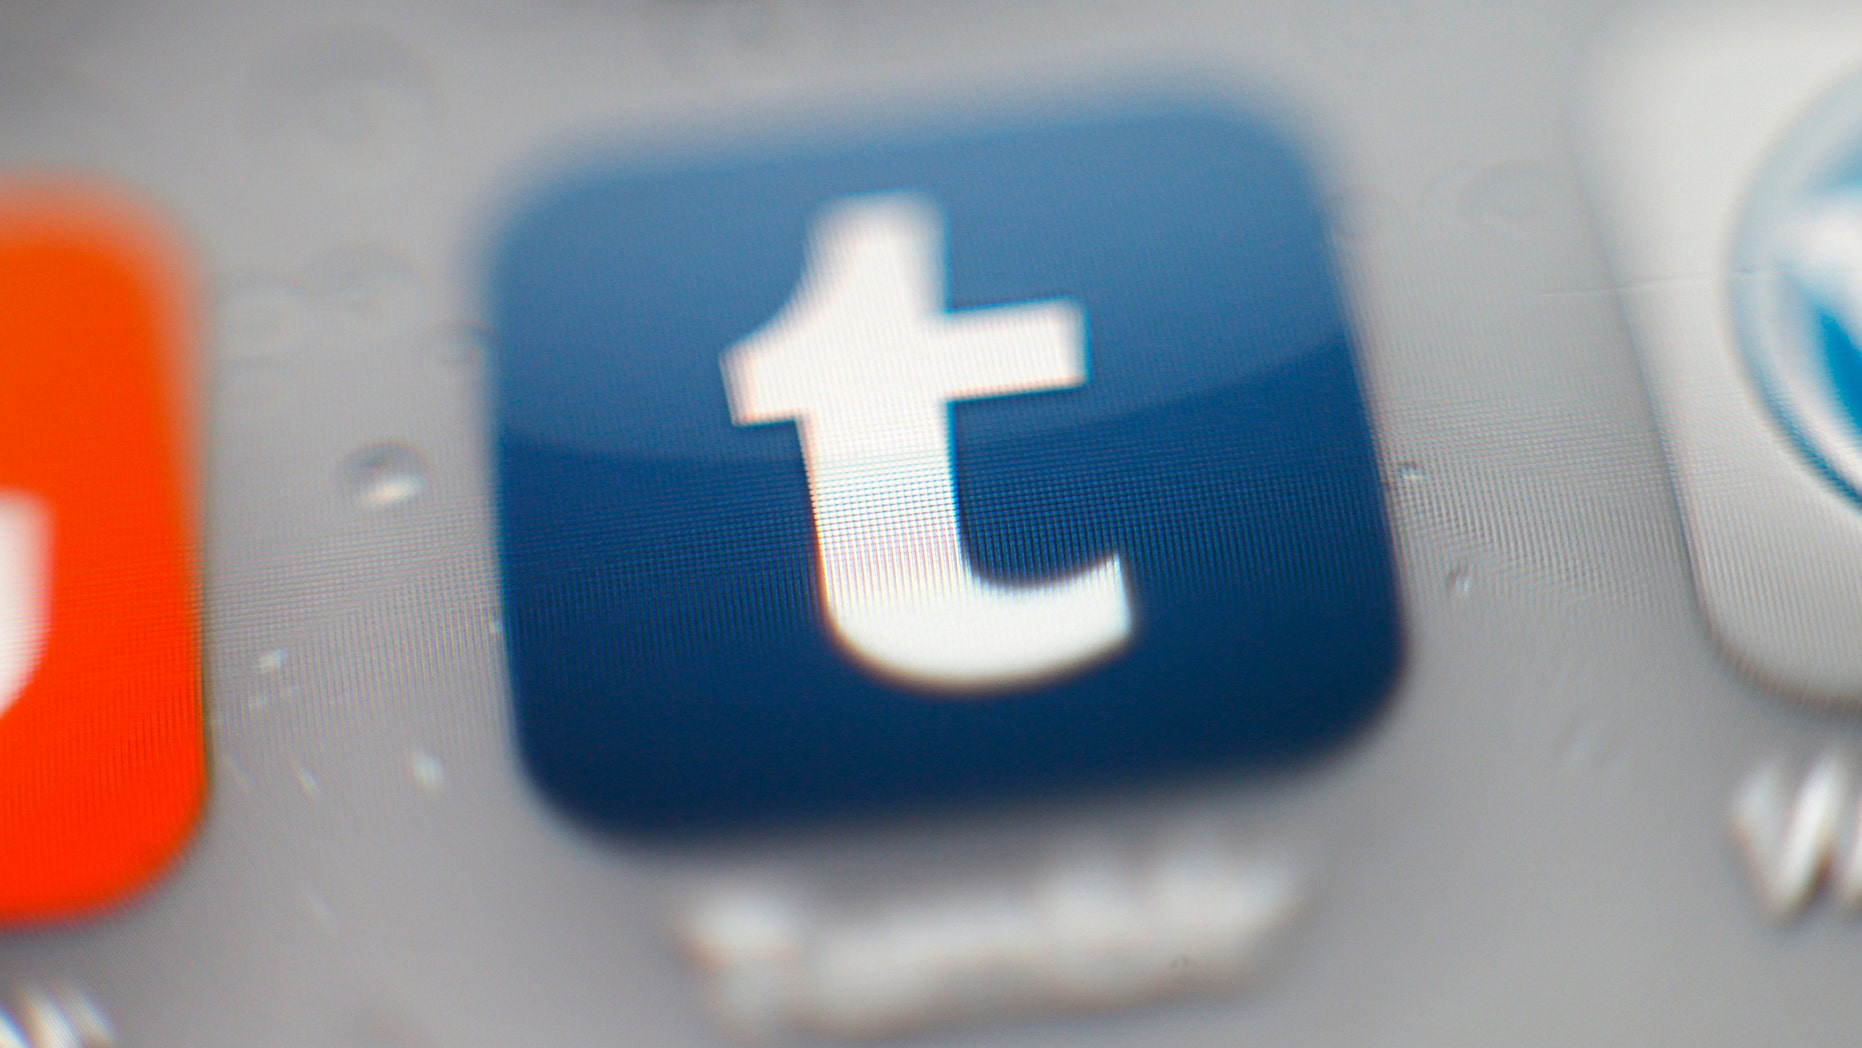 File photo - Tumblr iPhone mobile app icon. (Photo by Hoch Zwei/Corbis via Getty Images)